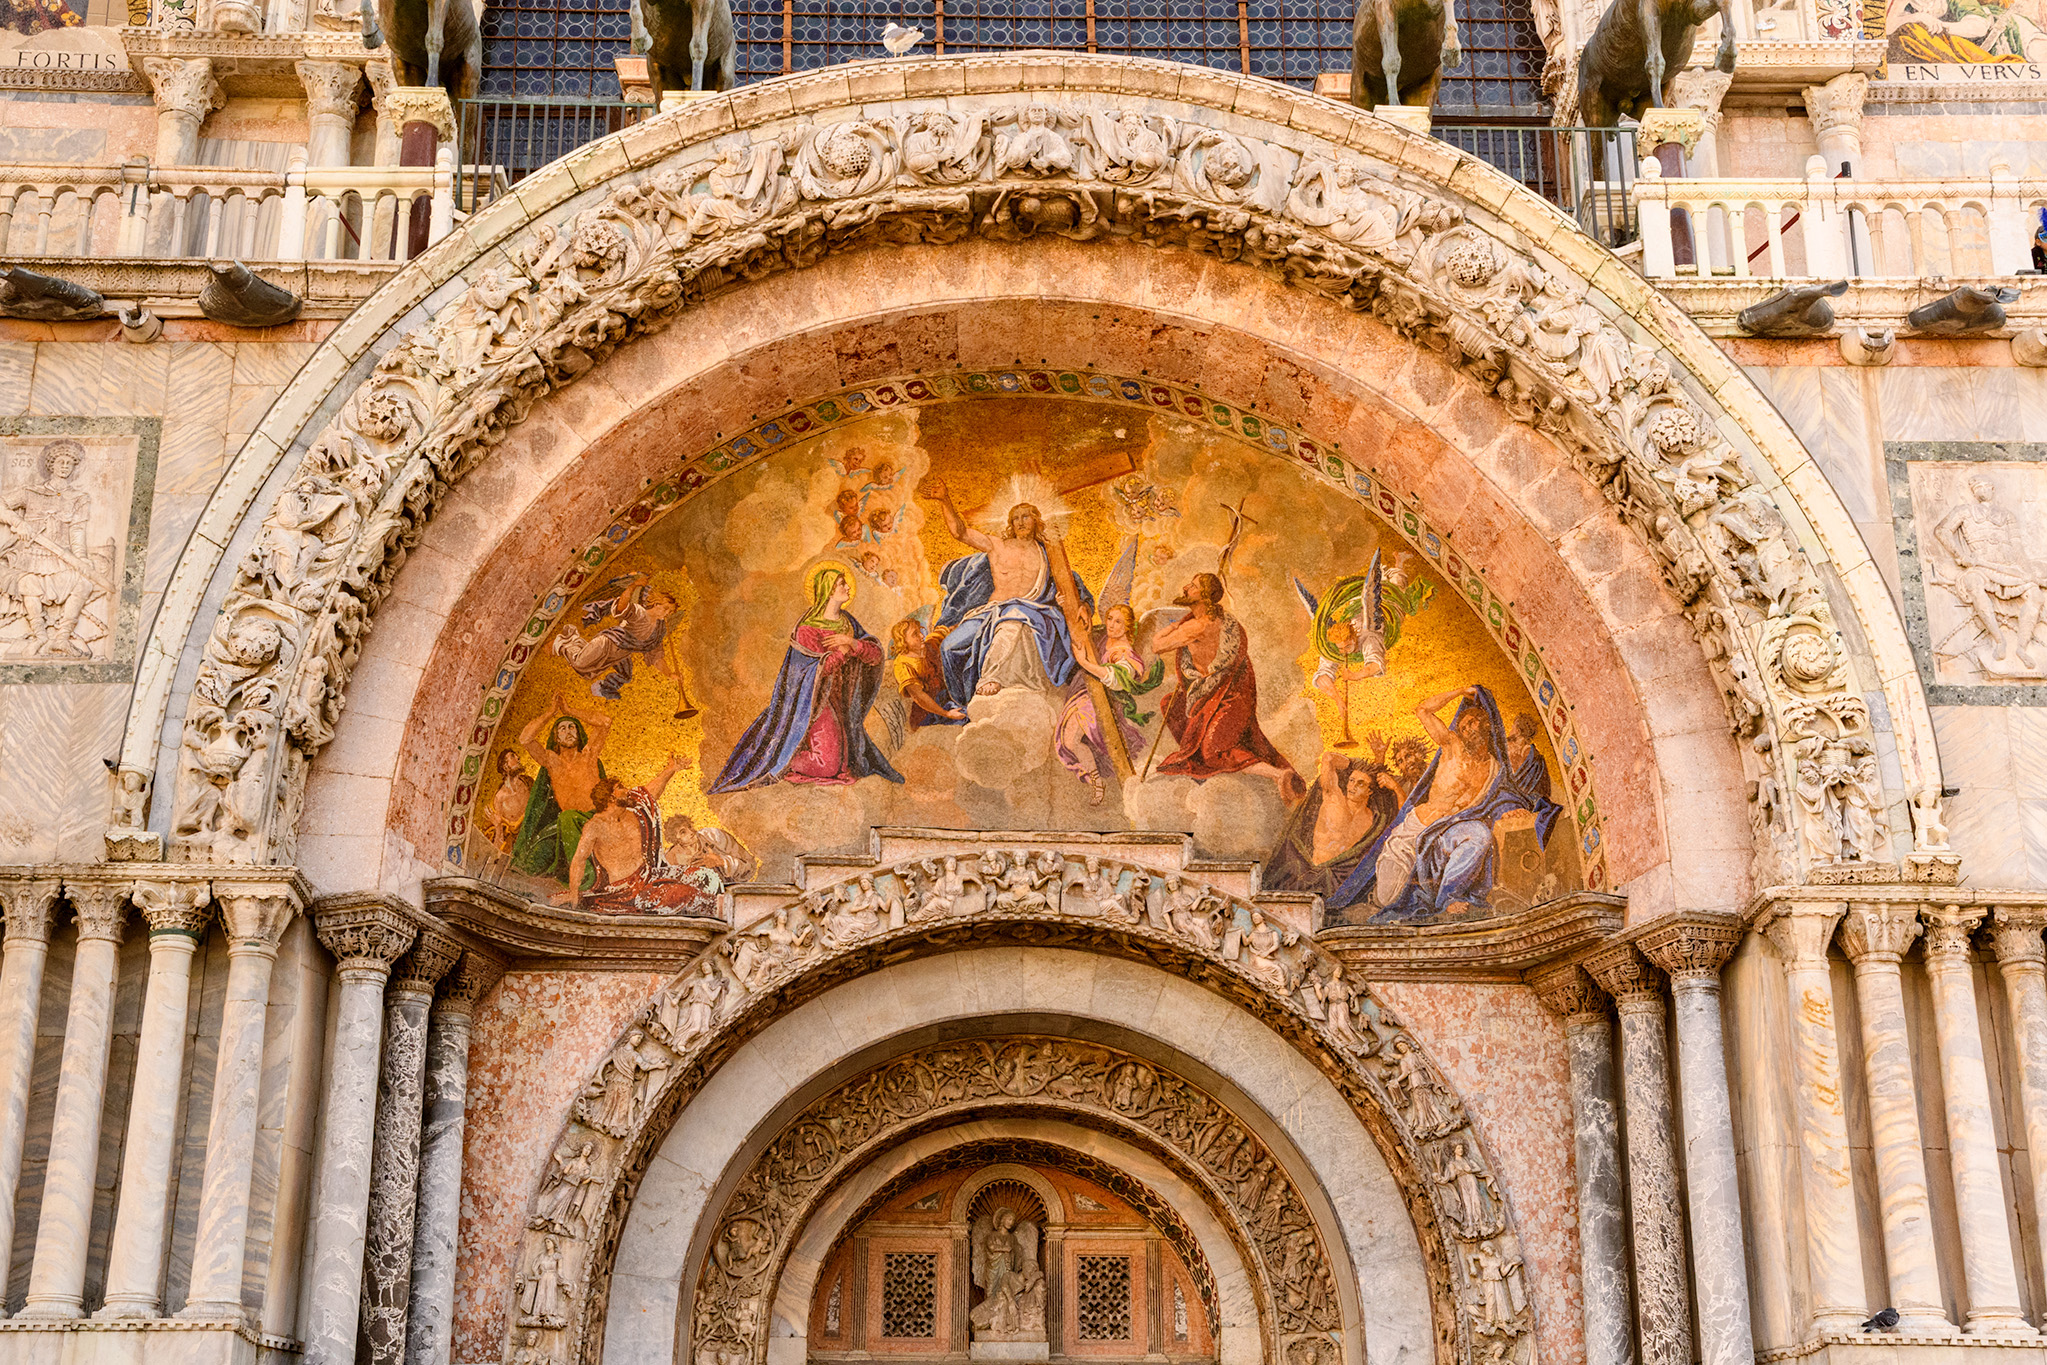 Our guide Andrea did an excellent job of interpreting all of the art work that adorns the facade of the basilica.